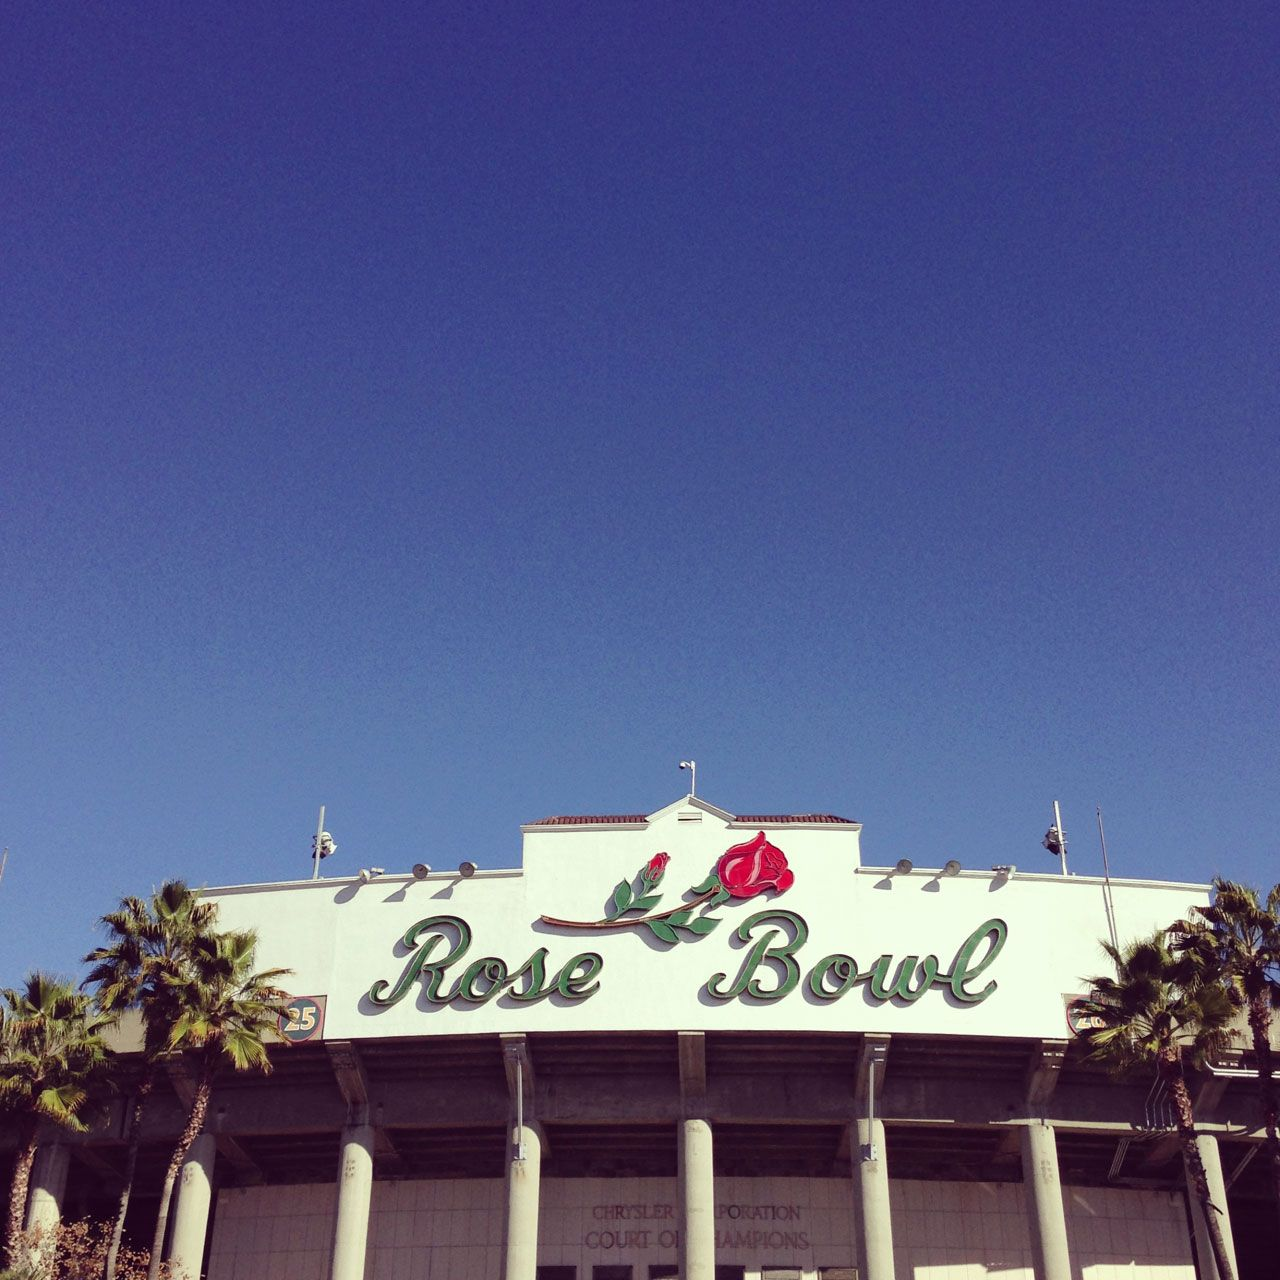 hope to see the cats play here one day rose bowl pasadena ca rose bowl pasadena rose bowl pasadena pinterest